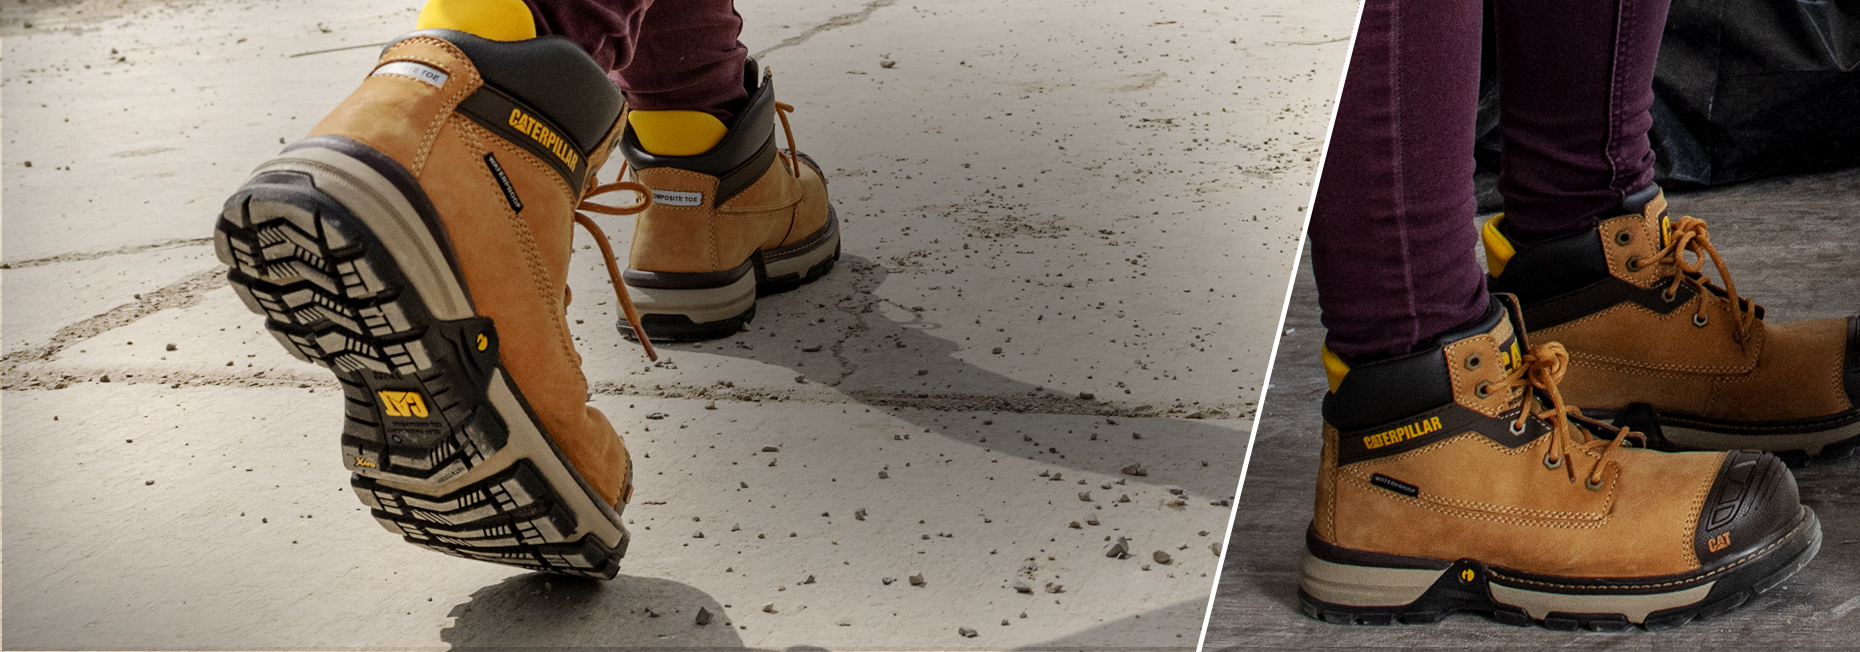 Women walking job sites wearing Cat superlites.